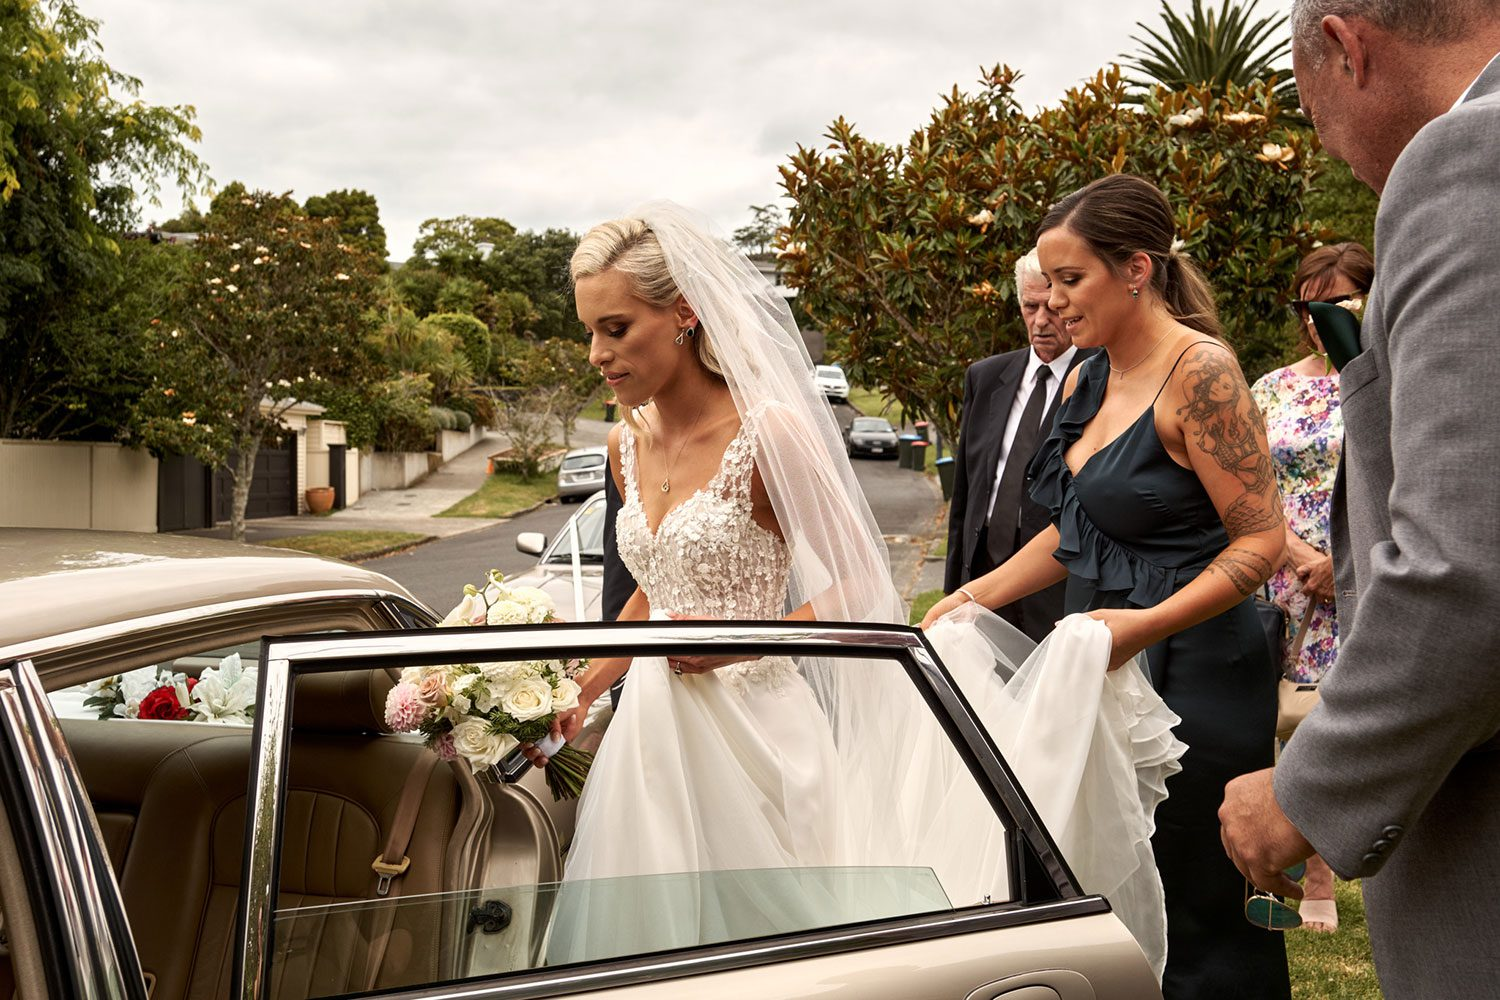 Bride wearing bespoke gown made of silk chiffon with delicate flower lace bodice by Vinka bridal designer Auckland - getting into car